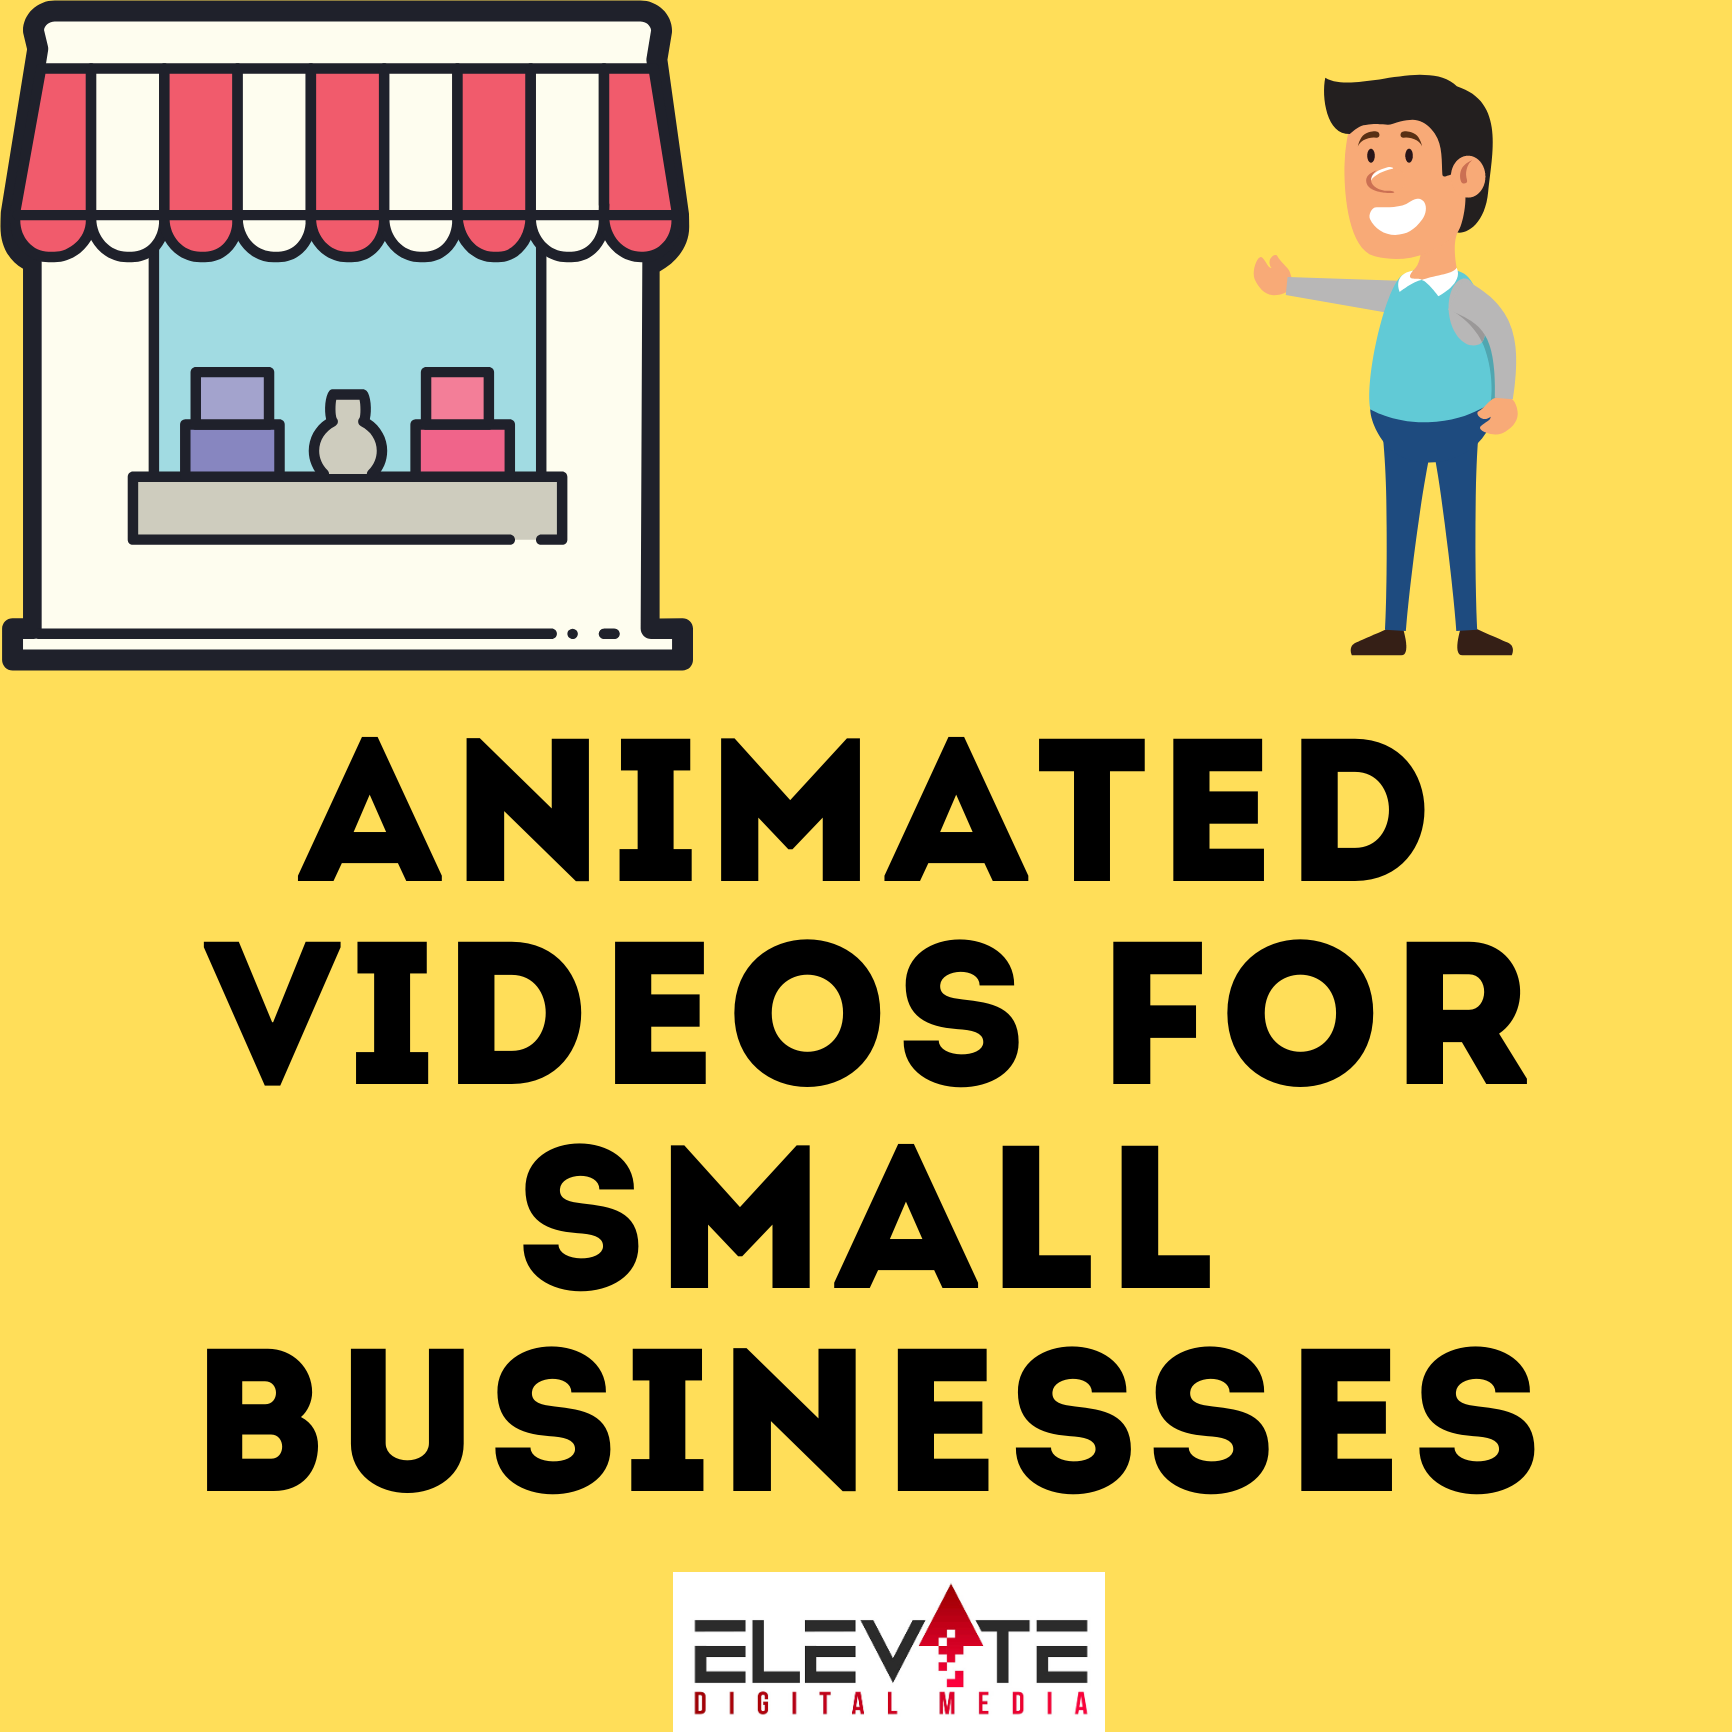 Animated Video Small Business